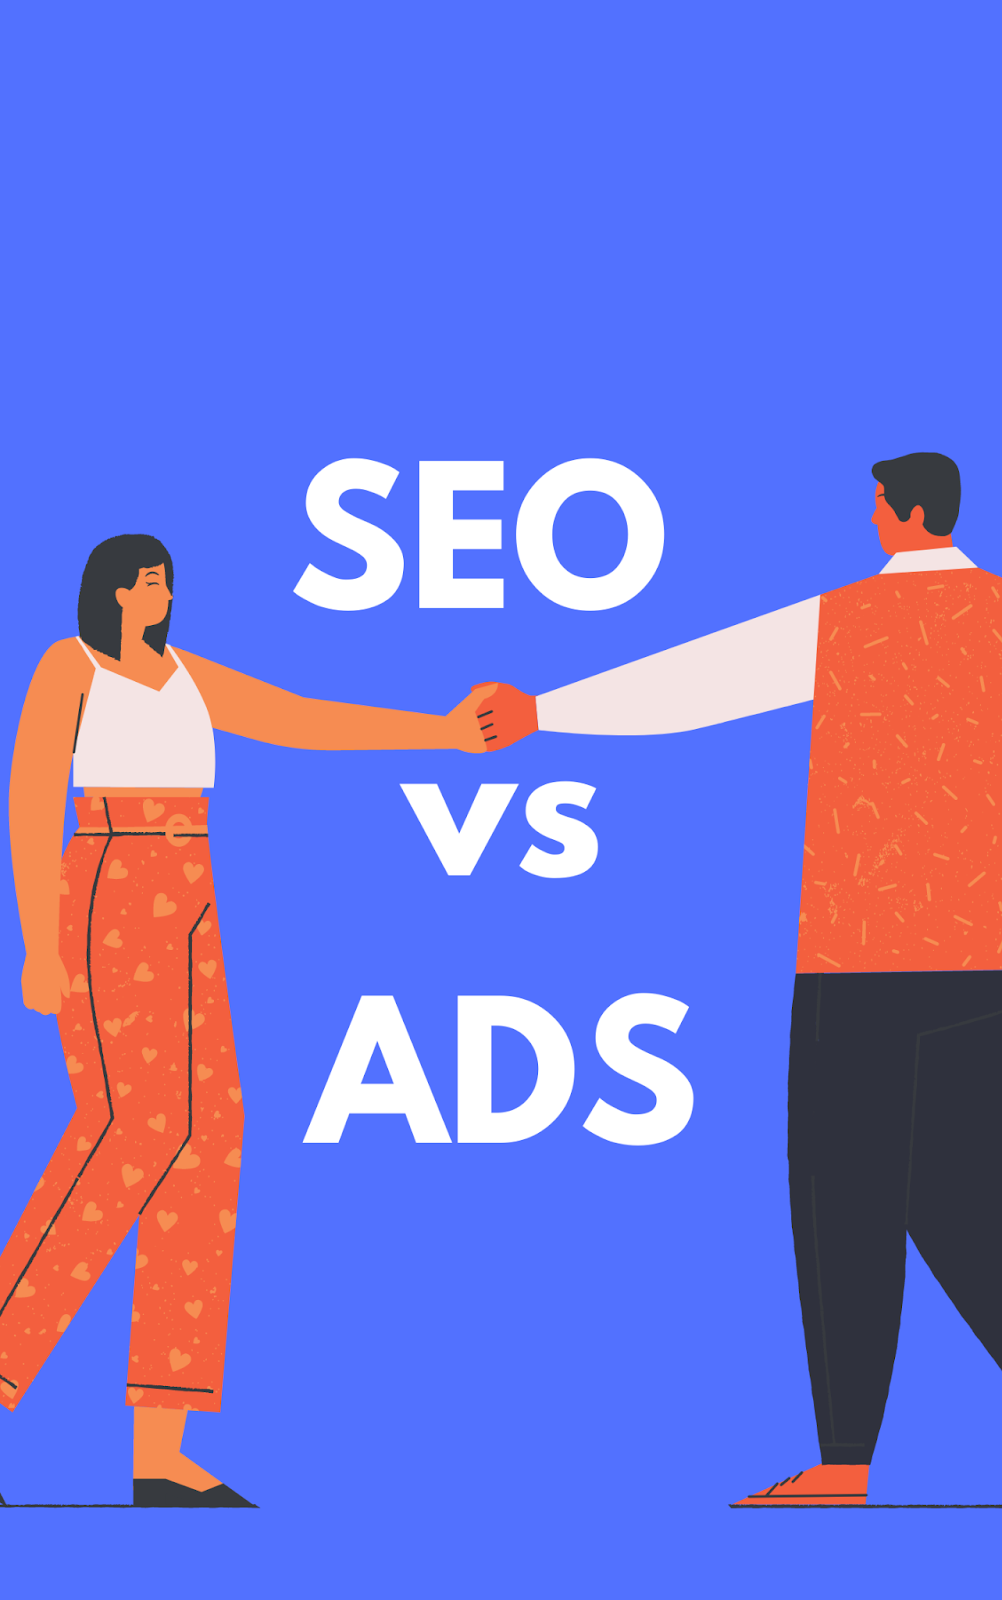 what is the best for your Ecommerce store? SEO or ADS?